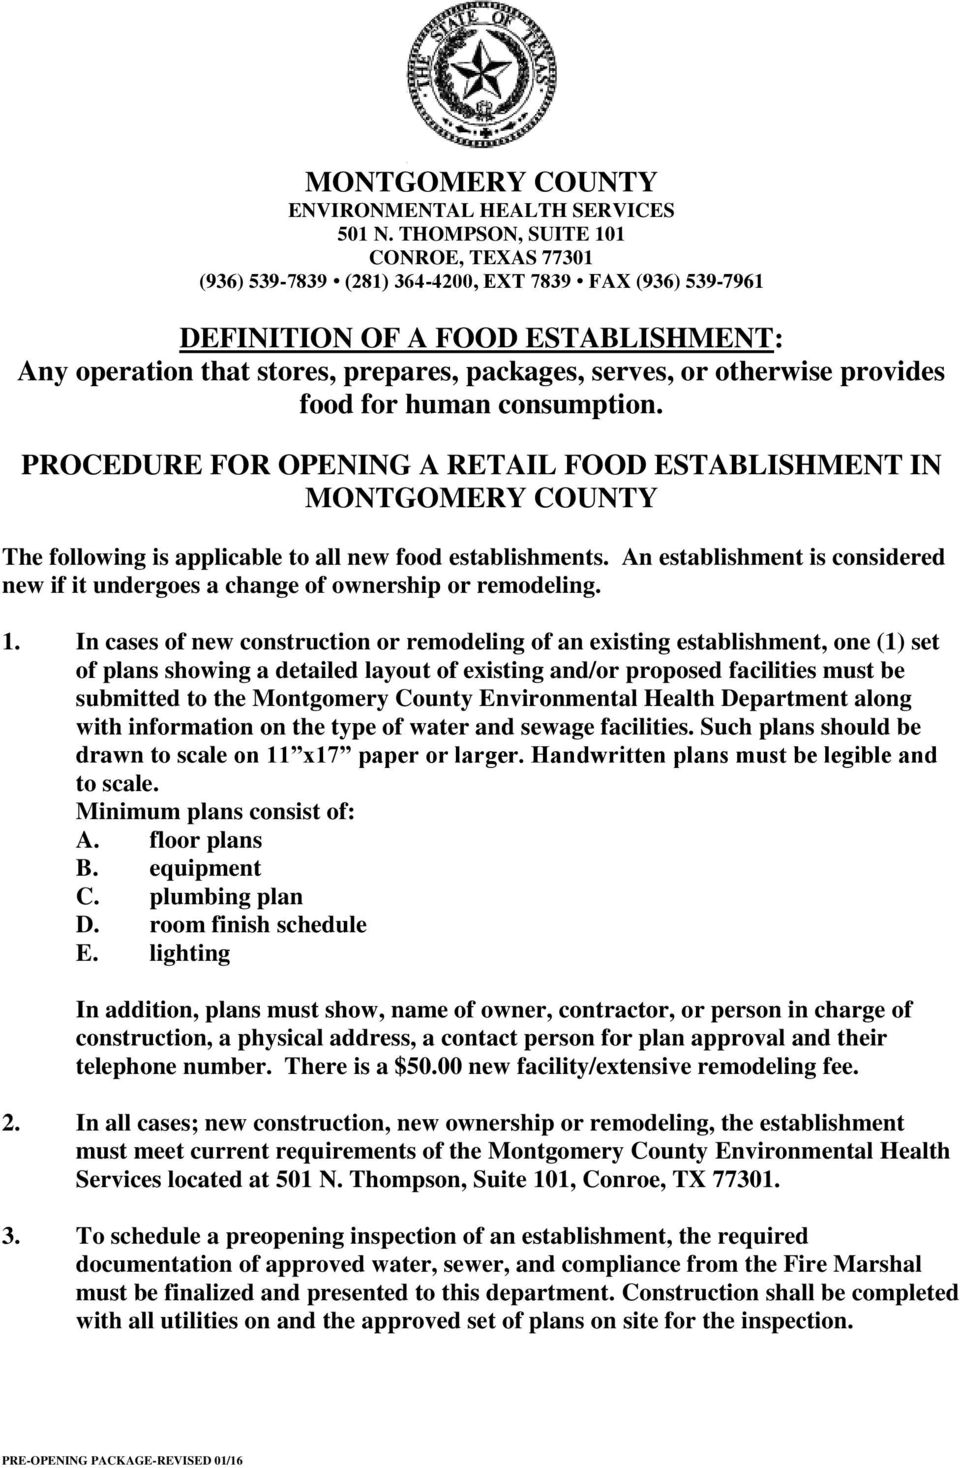 otherwise provides food for human consumption. PROCEDURE FOR OPENING A RETAIL FOOD ESTABLISHMENT IN MONTGOMERY COUNTY The following is applicable to all new food establishments.